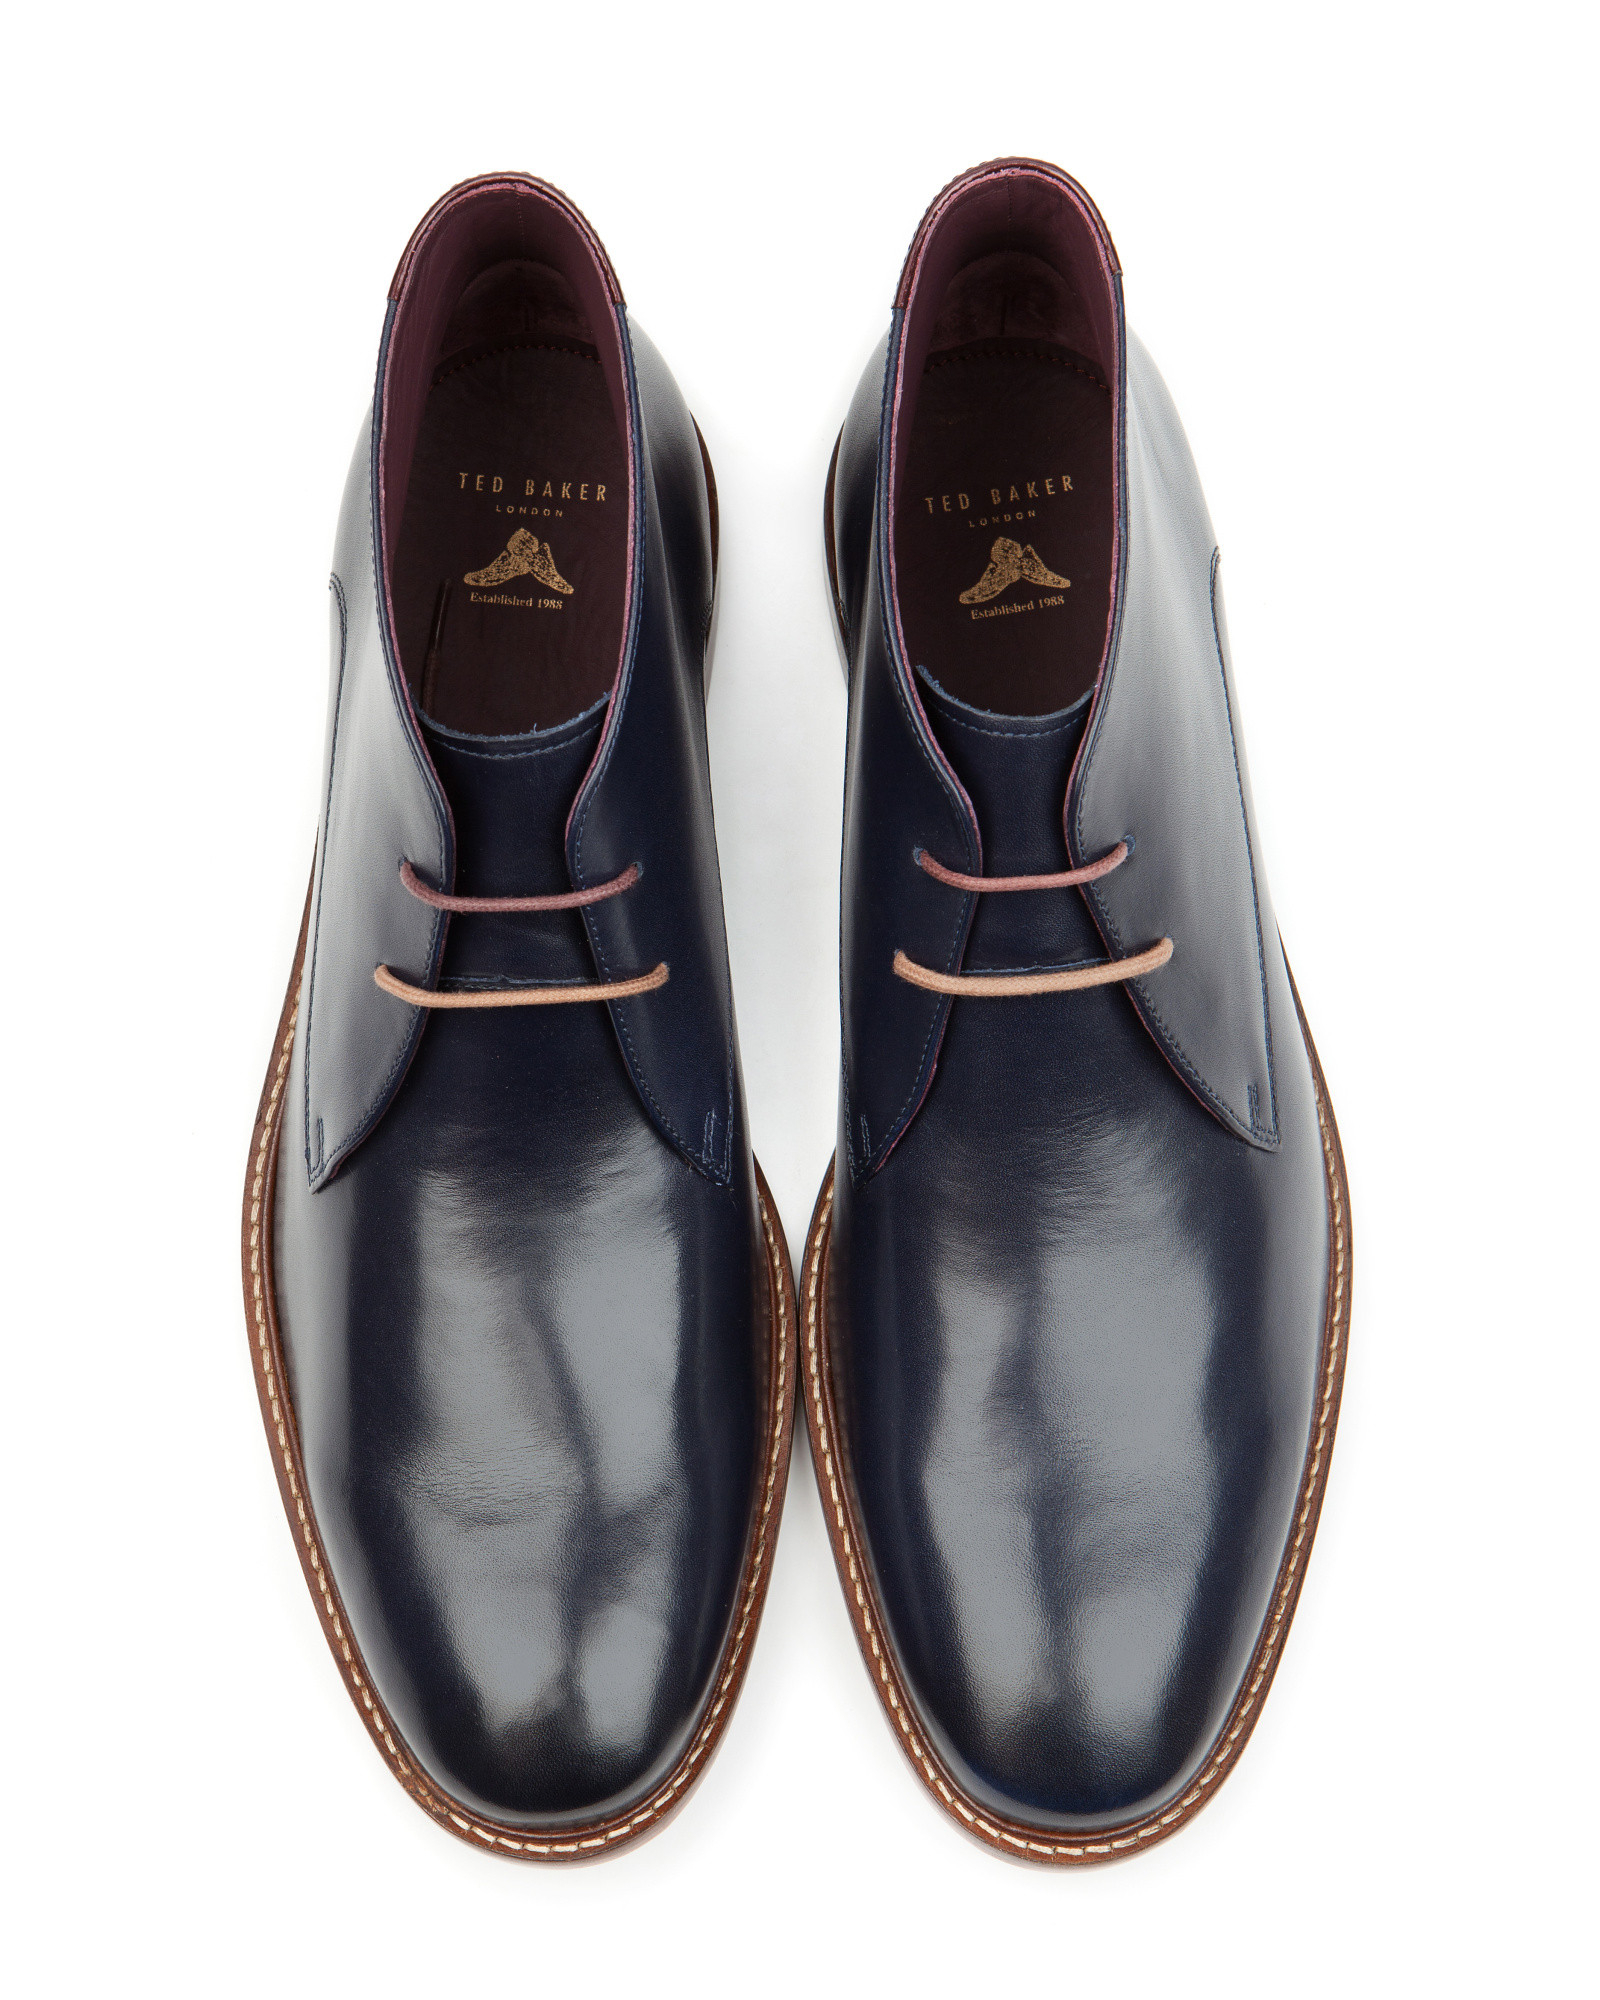 Ted Baker Formal Shoes Blue Laces